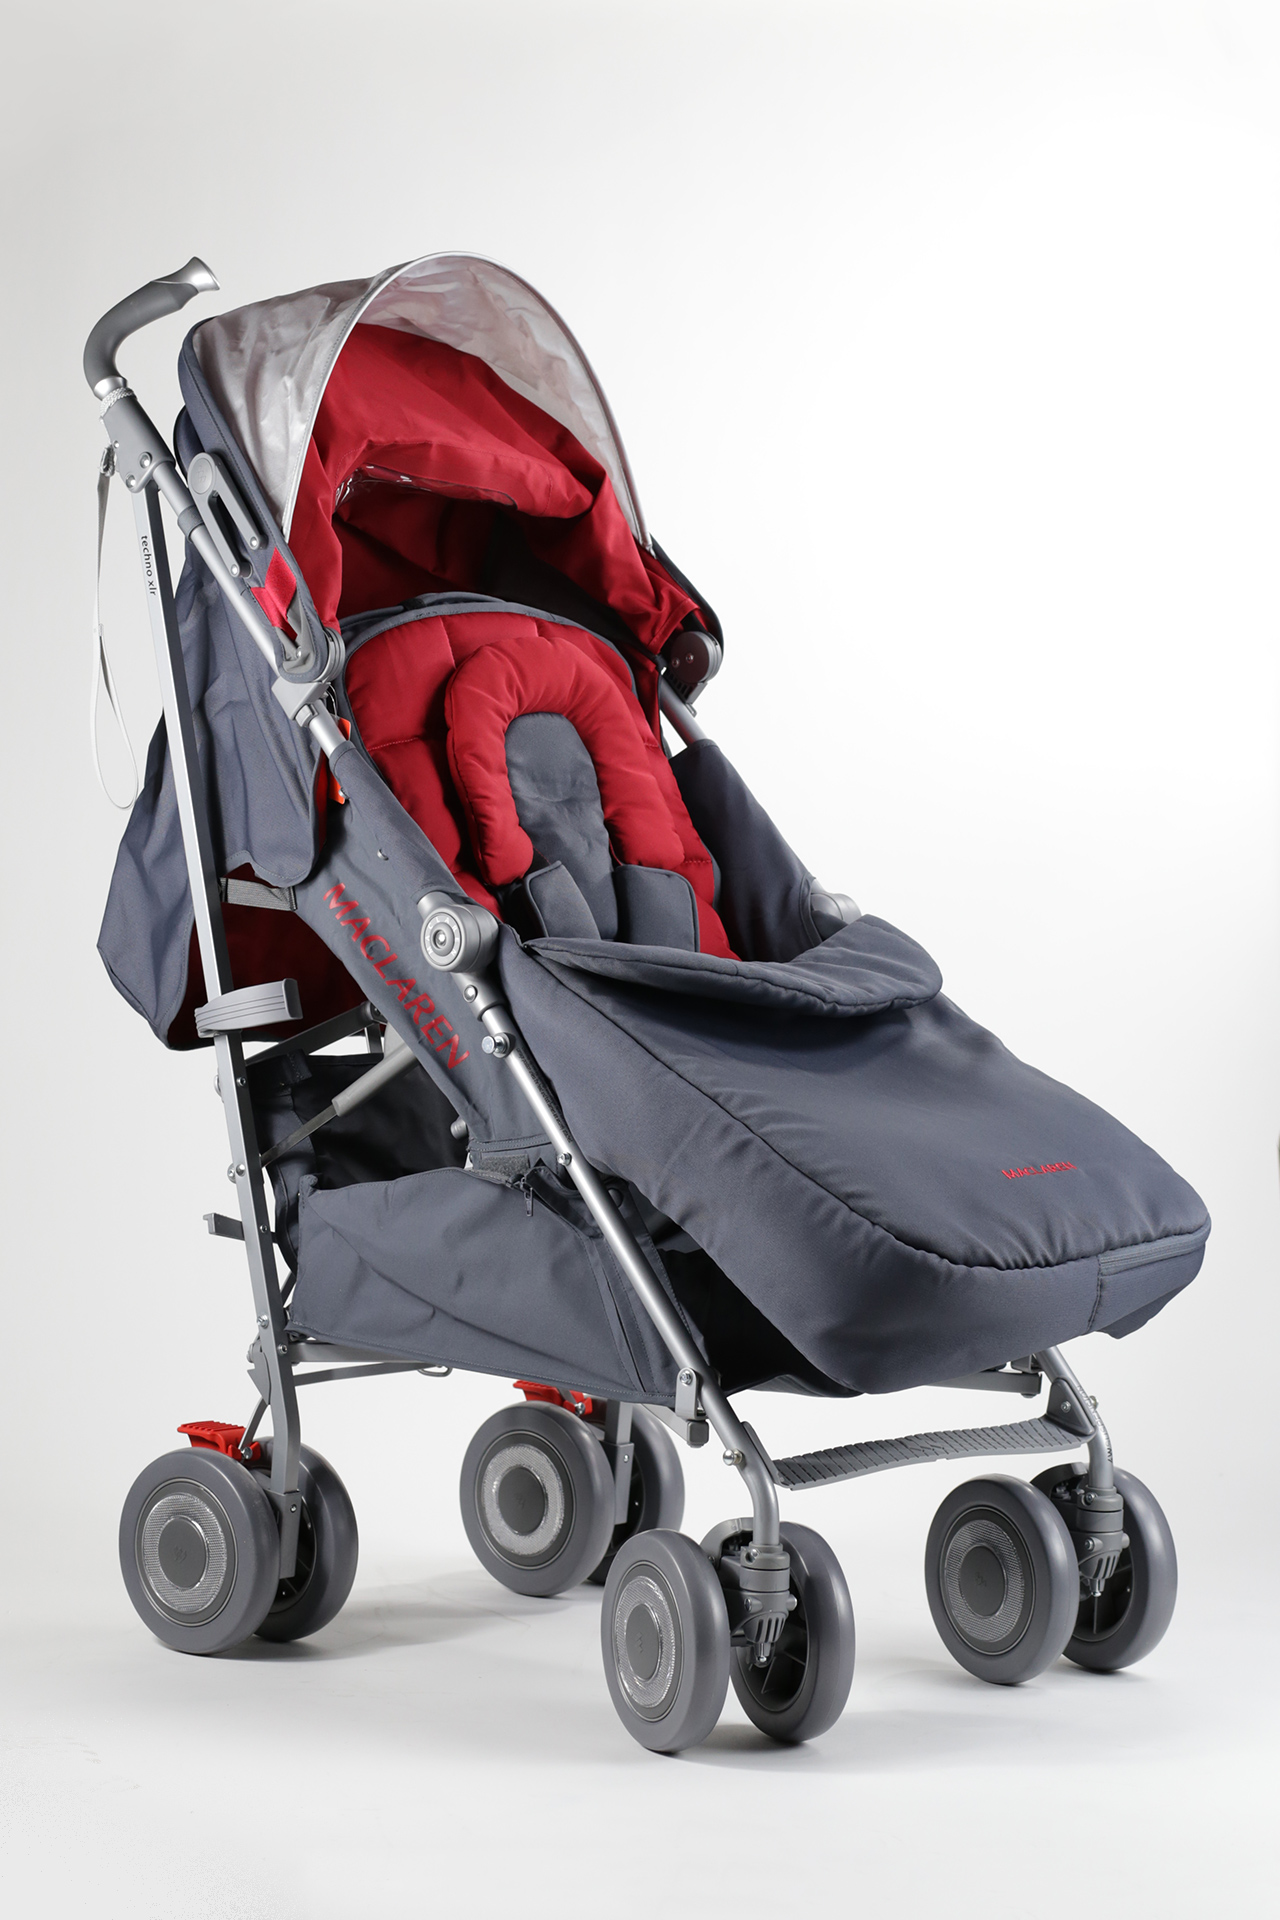 maclaren stroller techno xlr 2015 scarlet buy at kidsroom strollers. Black Bedroom Furniture Sets. Home Design Ideas